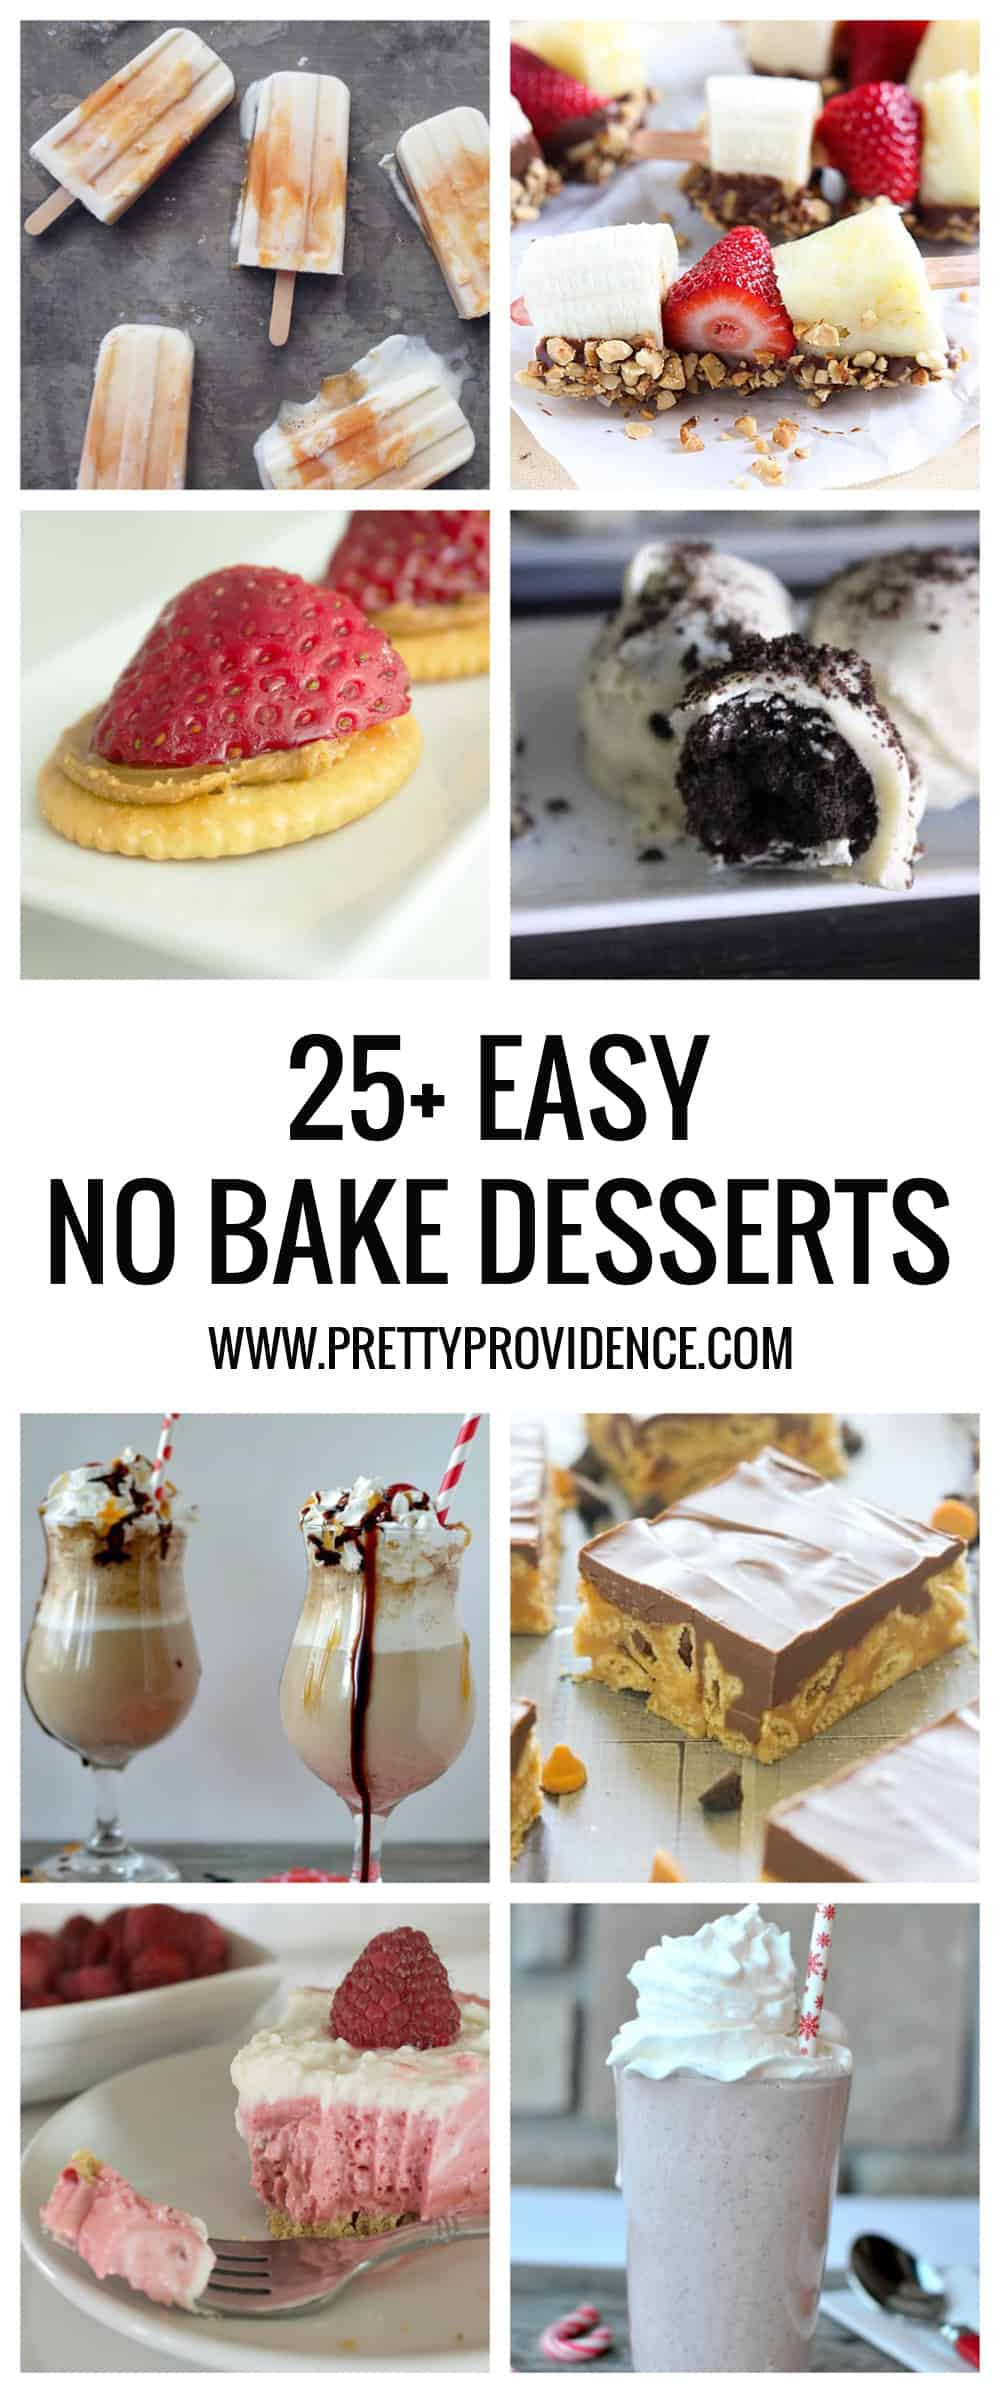 Okay these 25+ easy no bake dessert recipes are ALL winners! Quick, easy, no hot ovens required (!!!) and freakin' delicious!